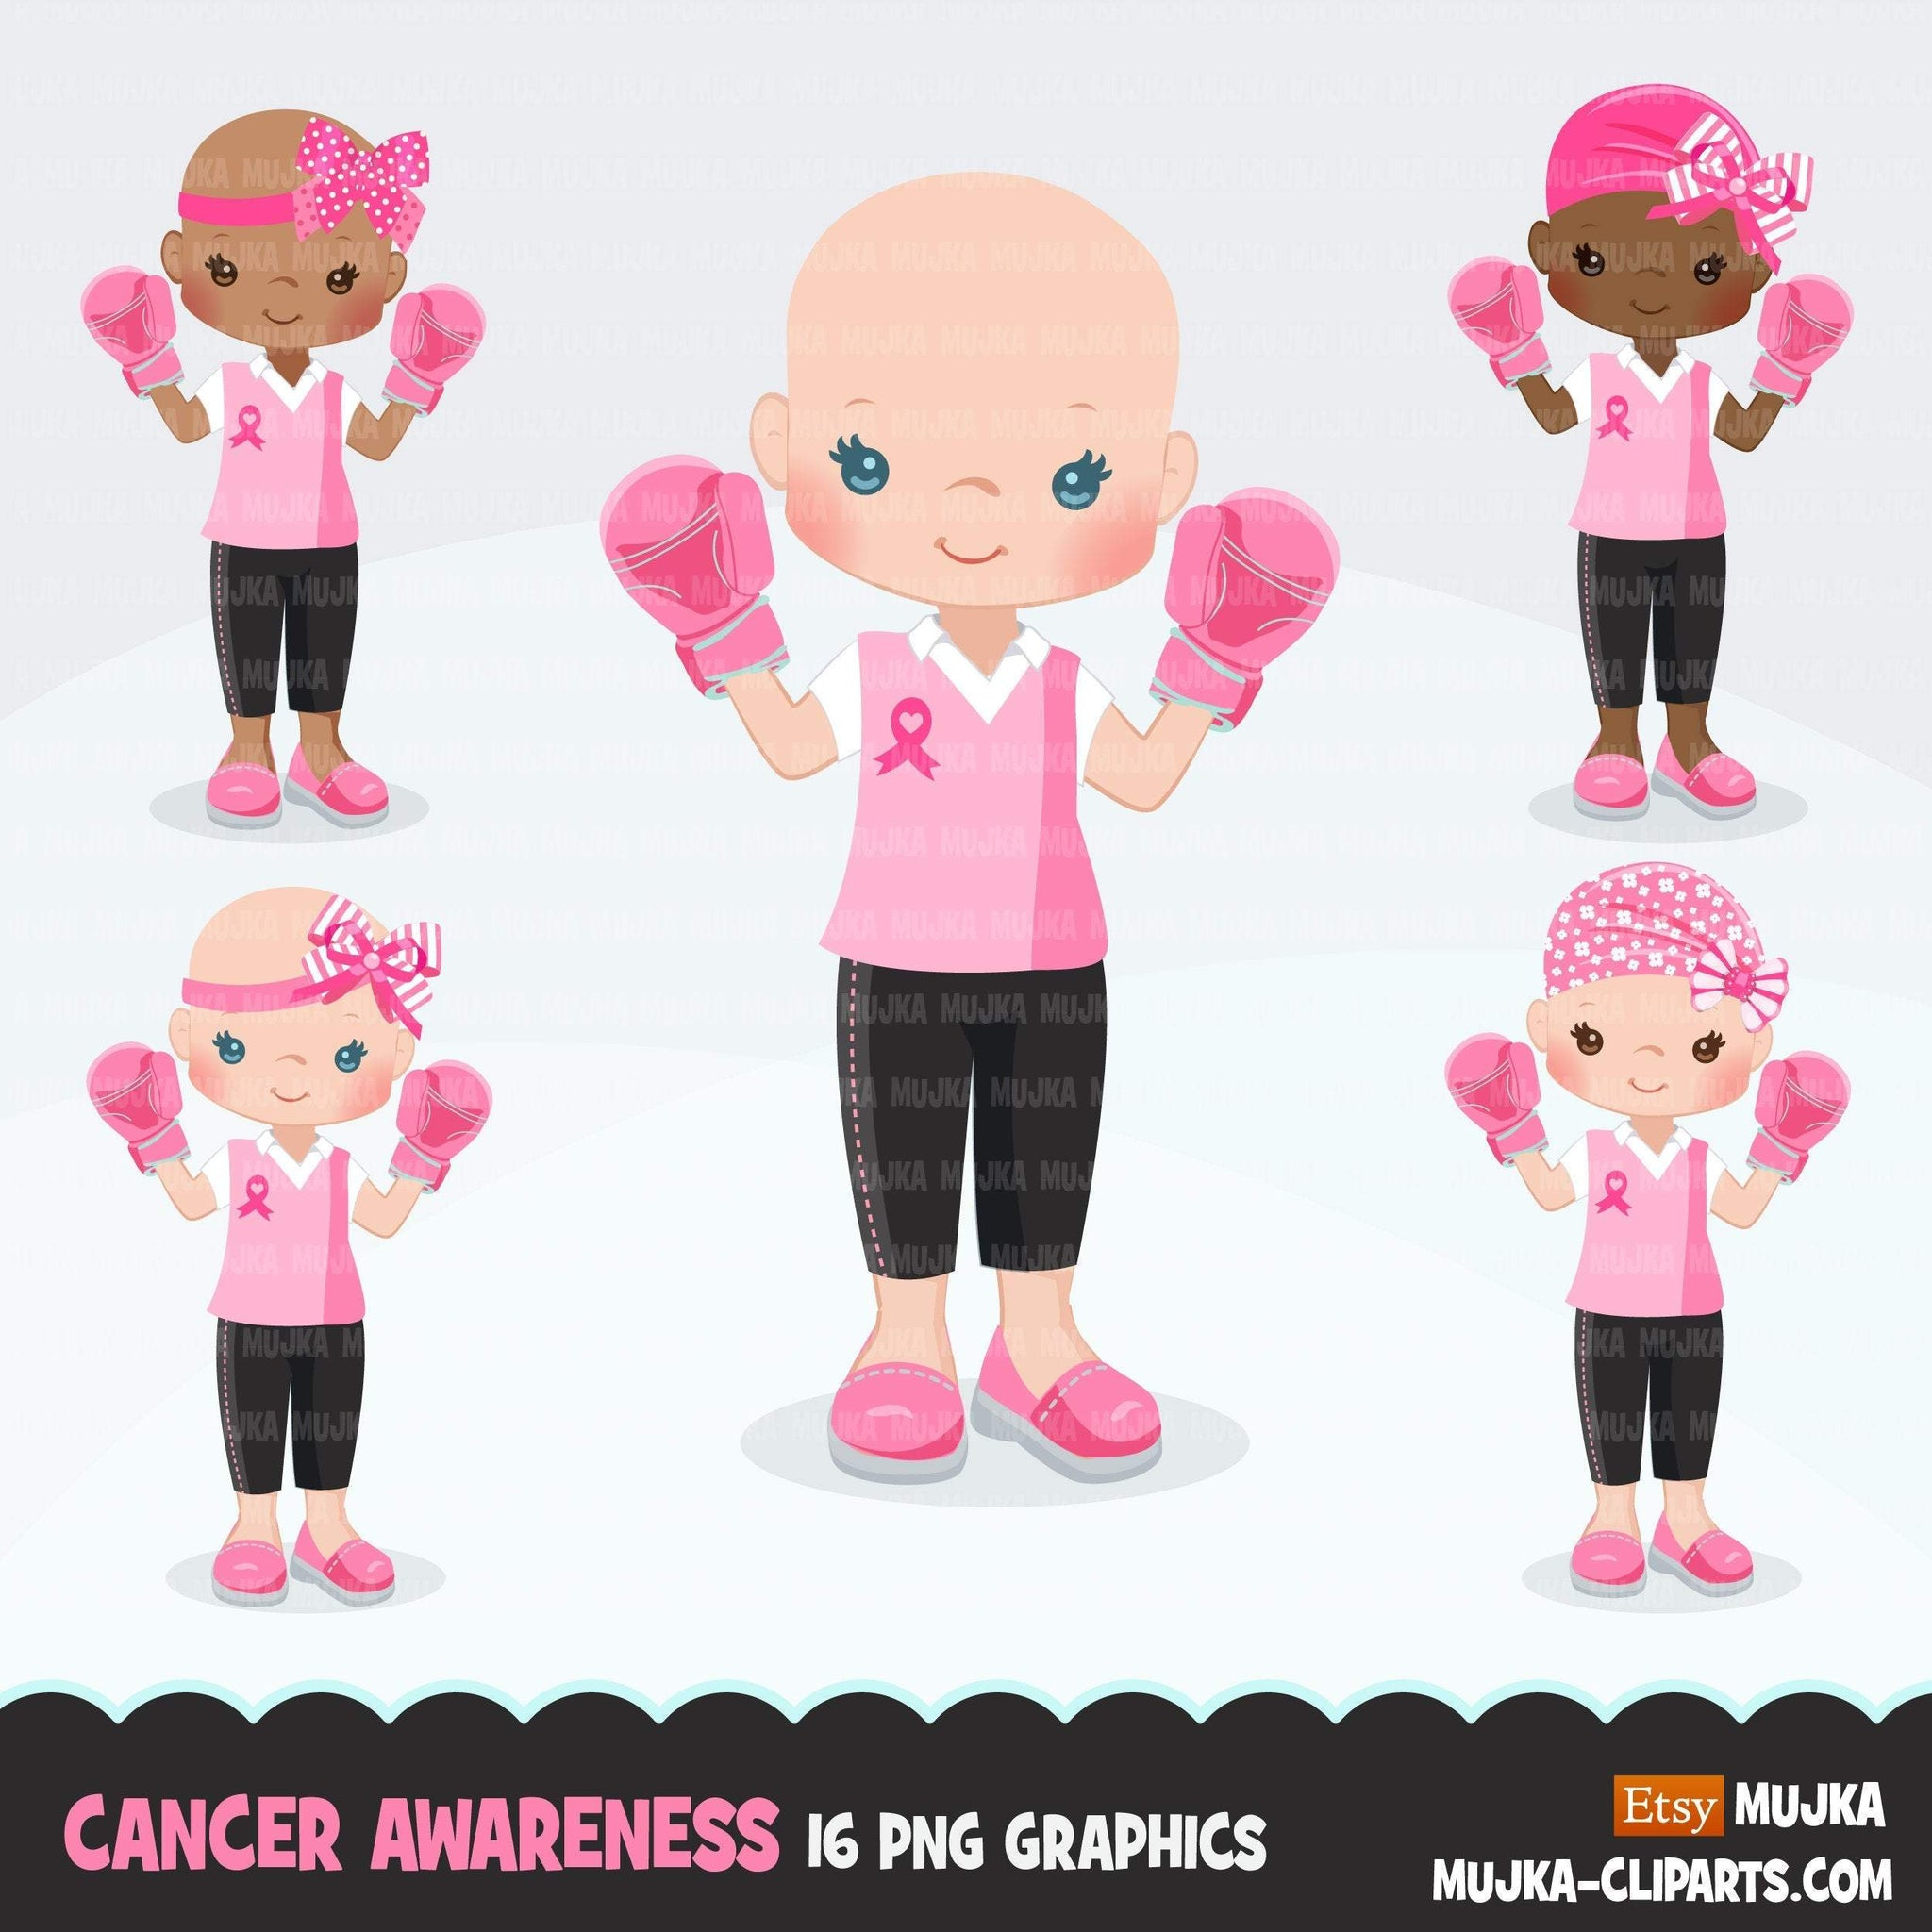 Breast Cancer awareness clipart, Pink boxing gloves, fight for the girl, pink ribbon, pink bra survivor graphics